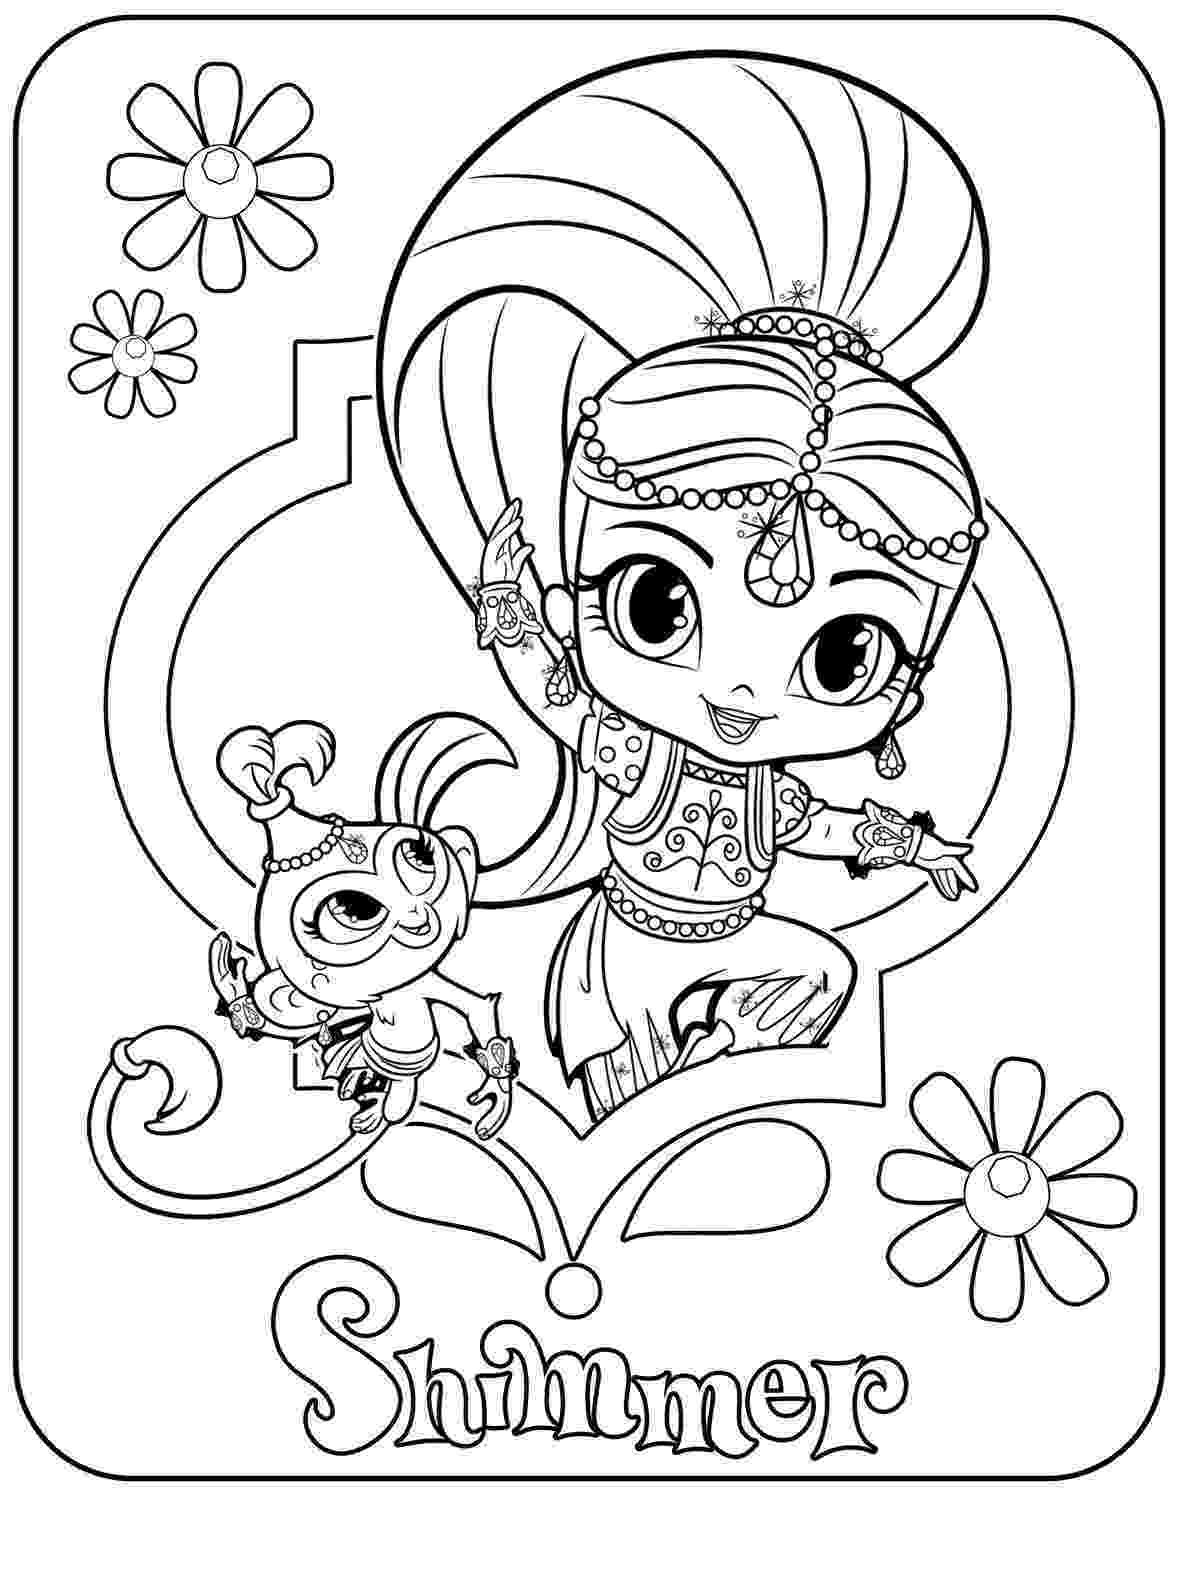 free coloring pages printable elmo coloring pages to download and print for free pages printable free coloring